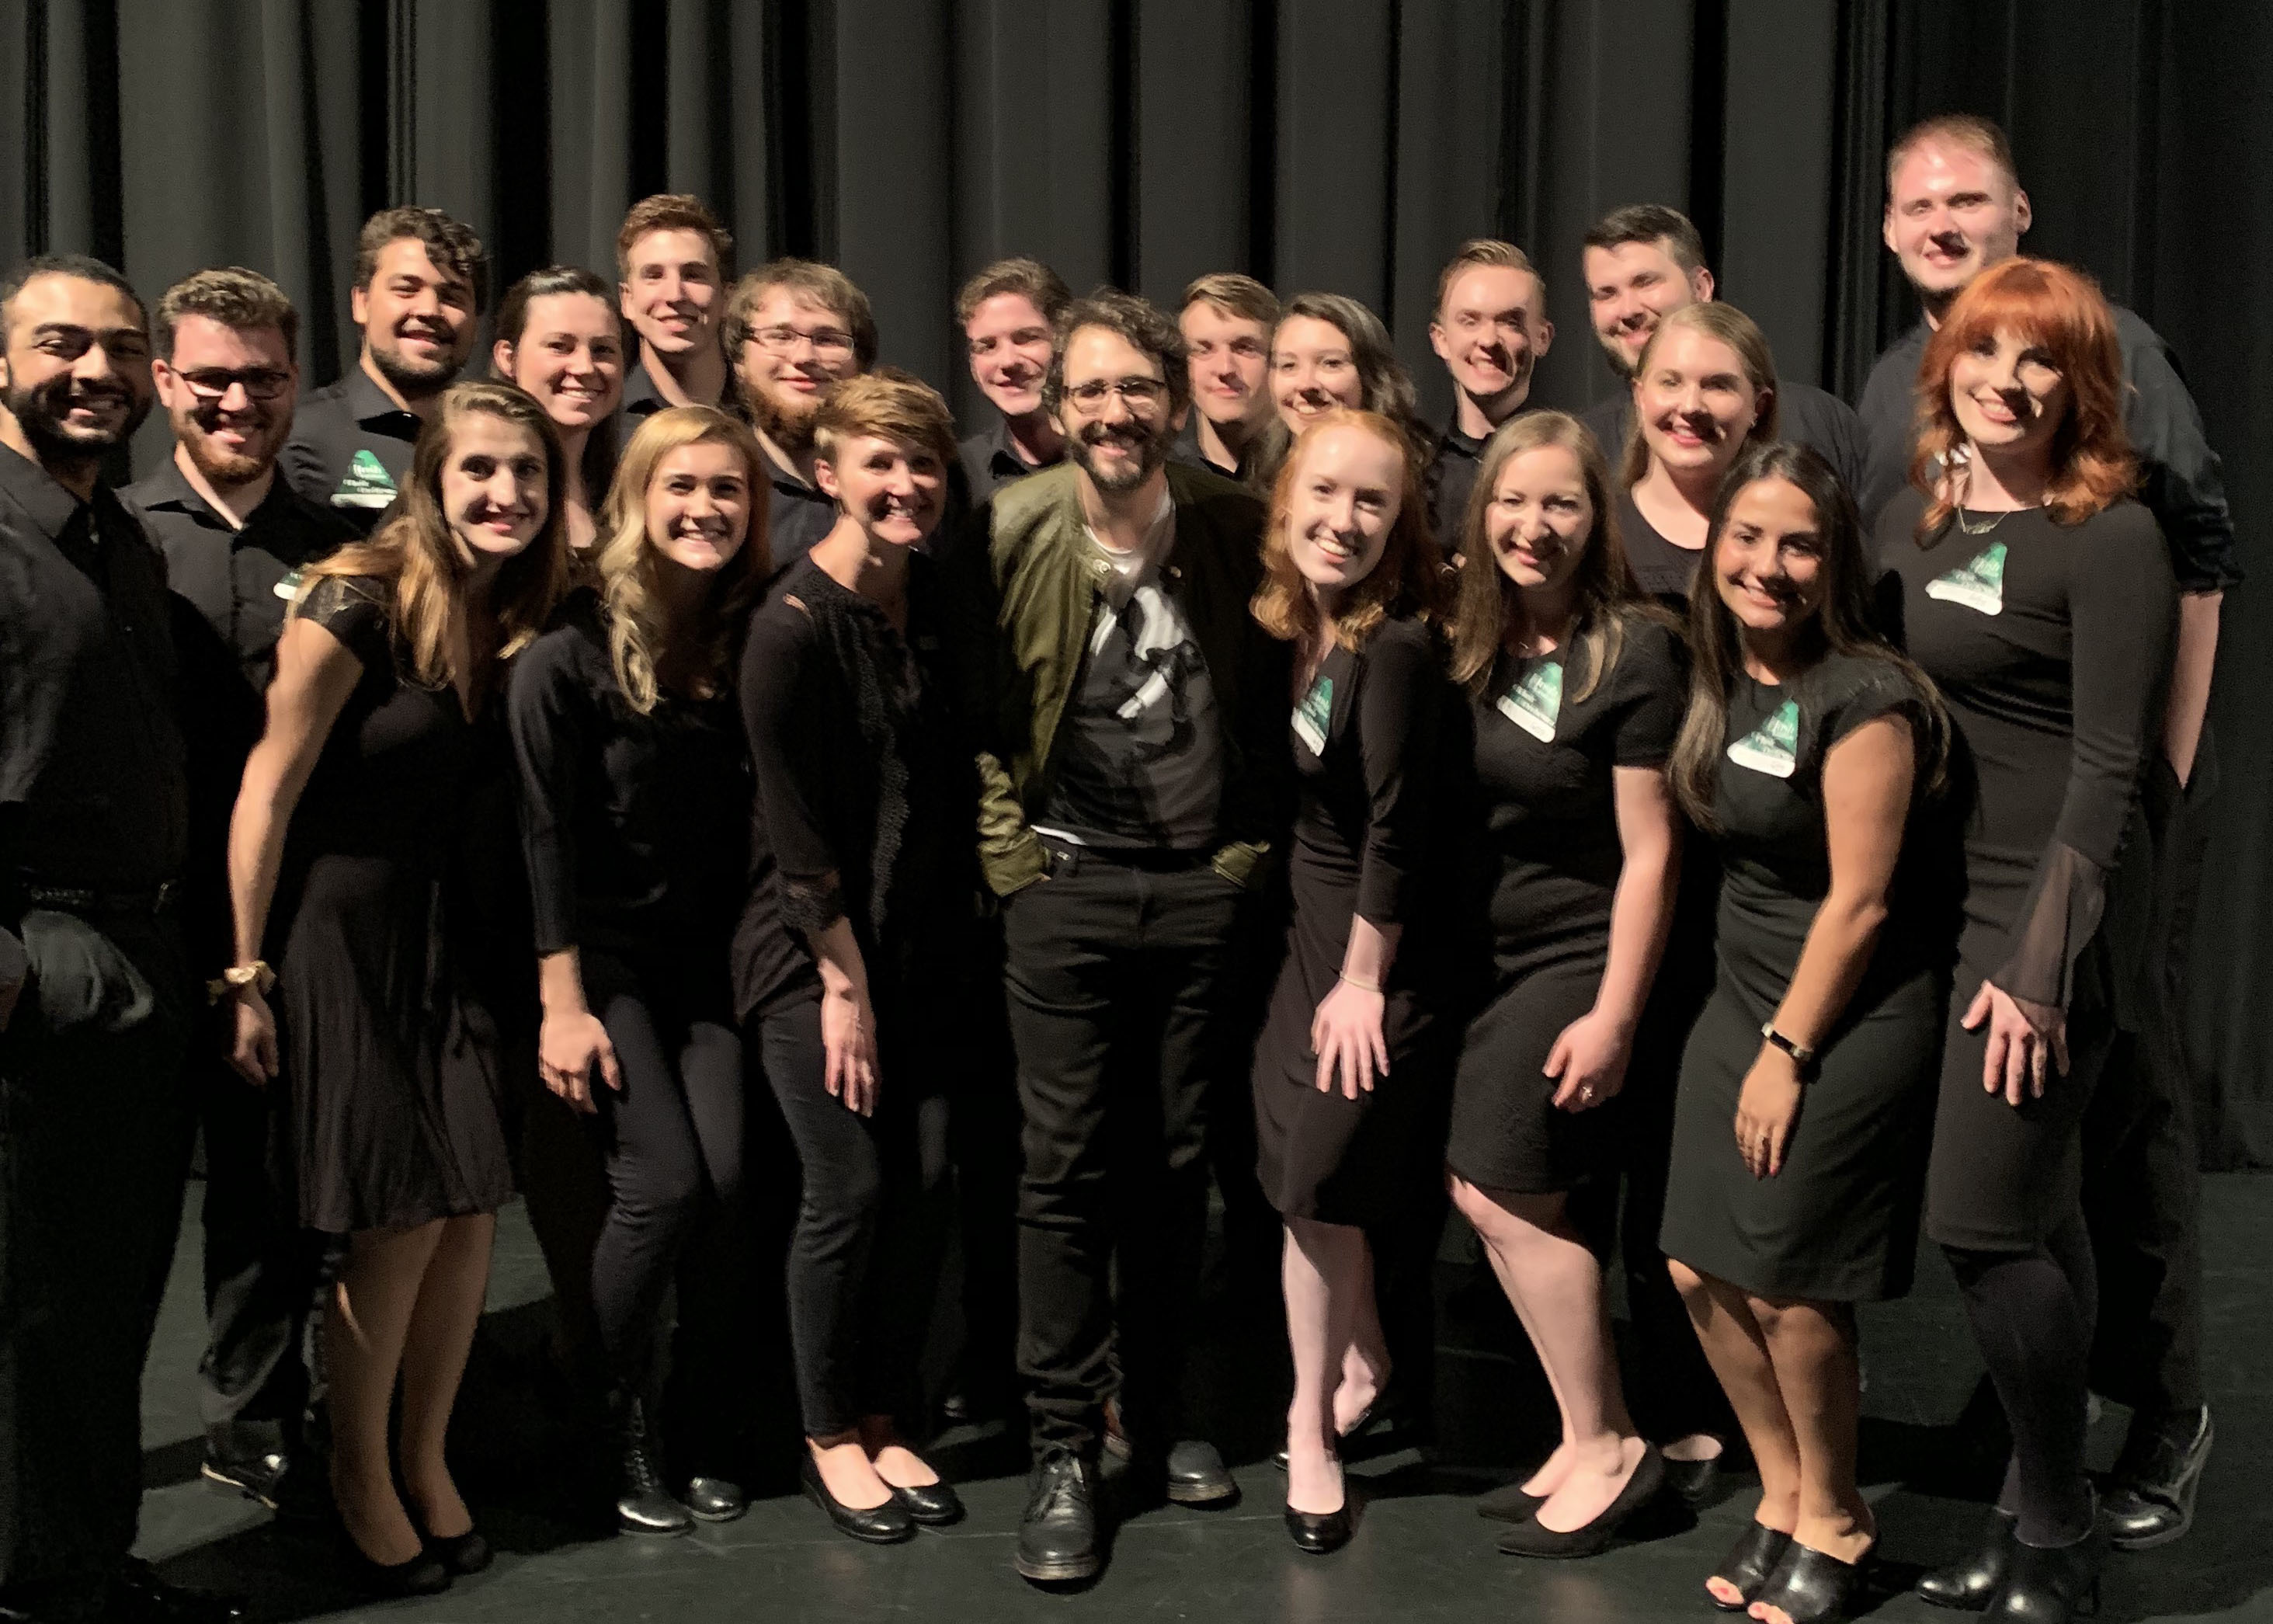 Josh groban and nazareth students 2019